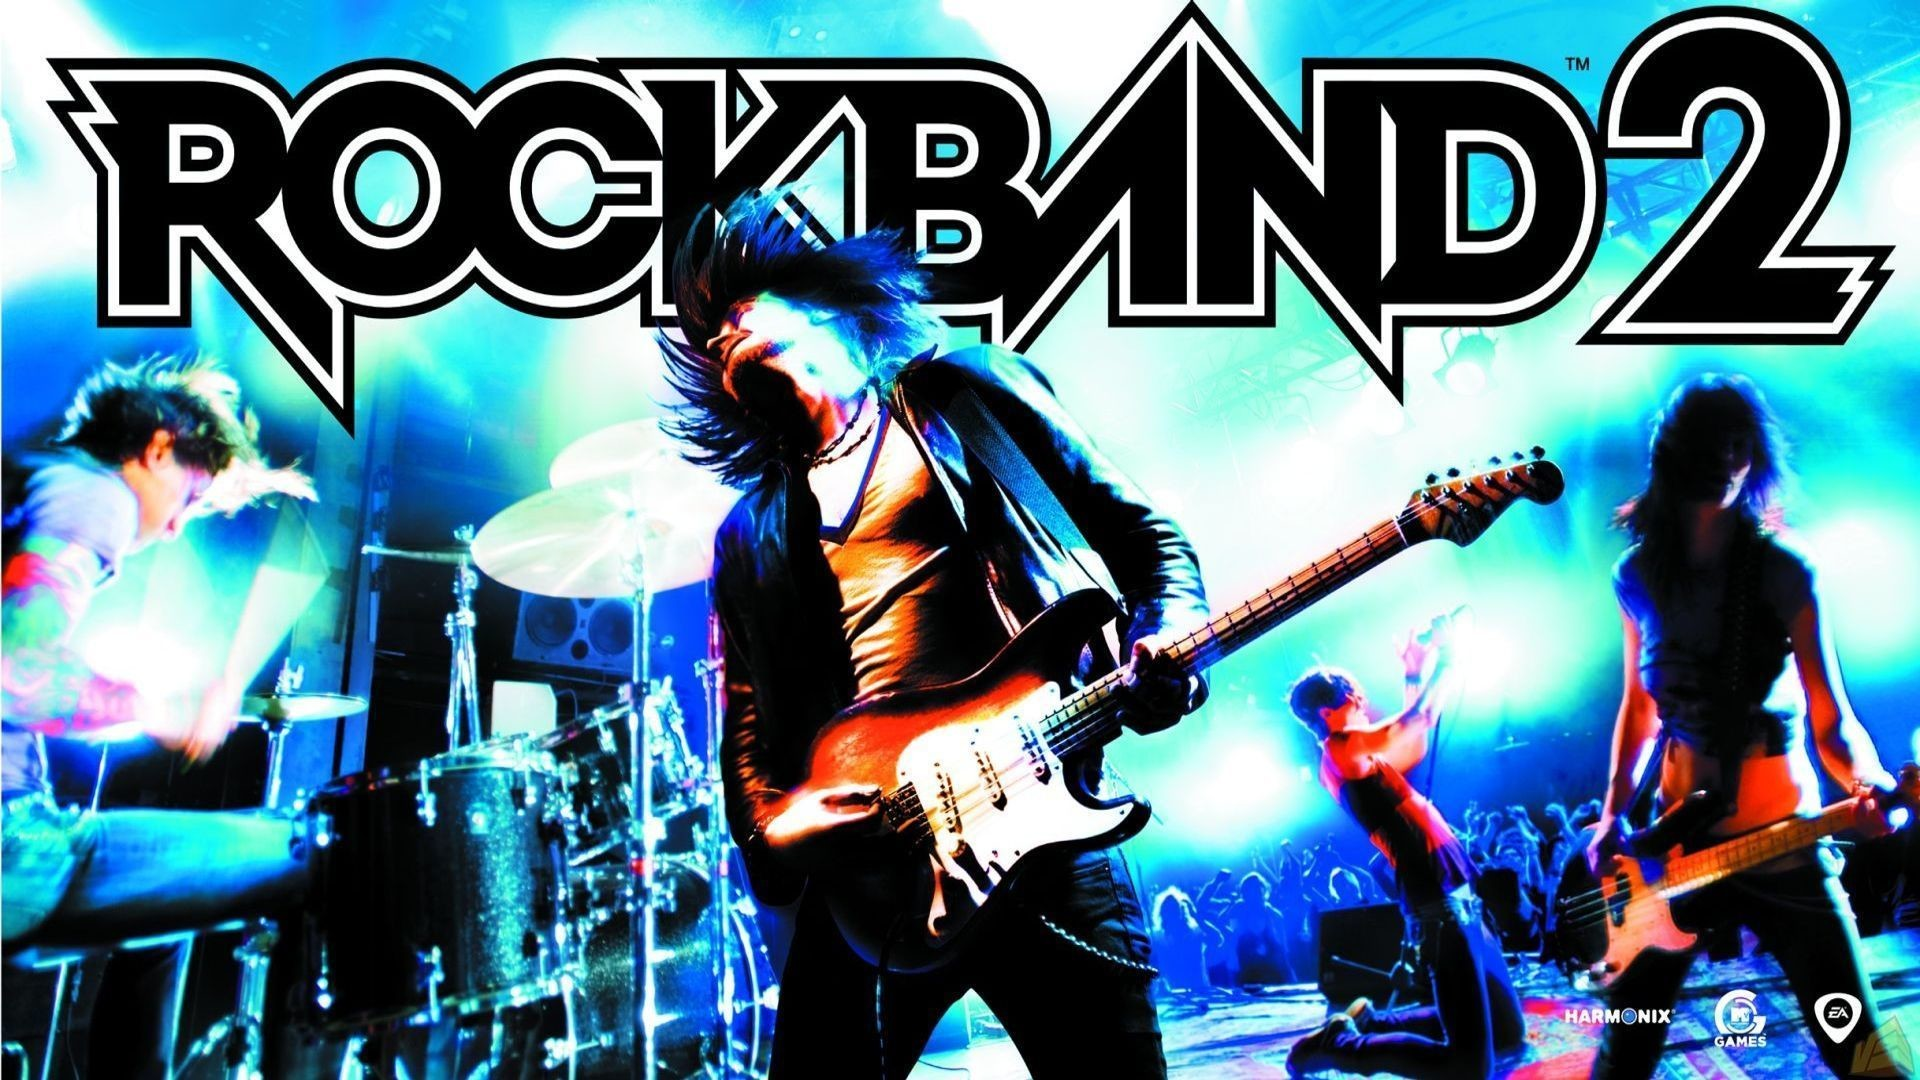 Top Rock Band Wallpapers Hd Images for Pinterest